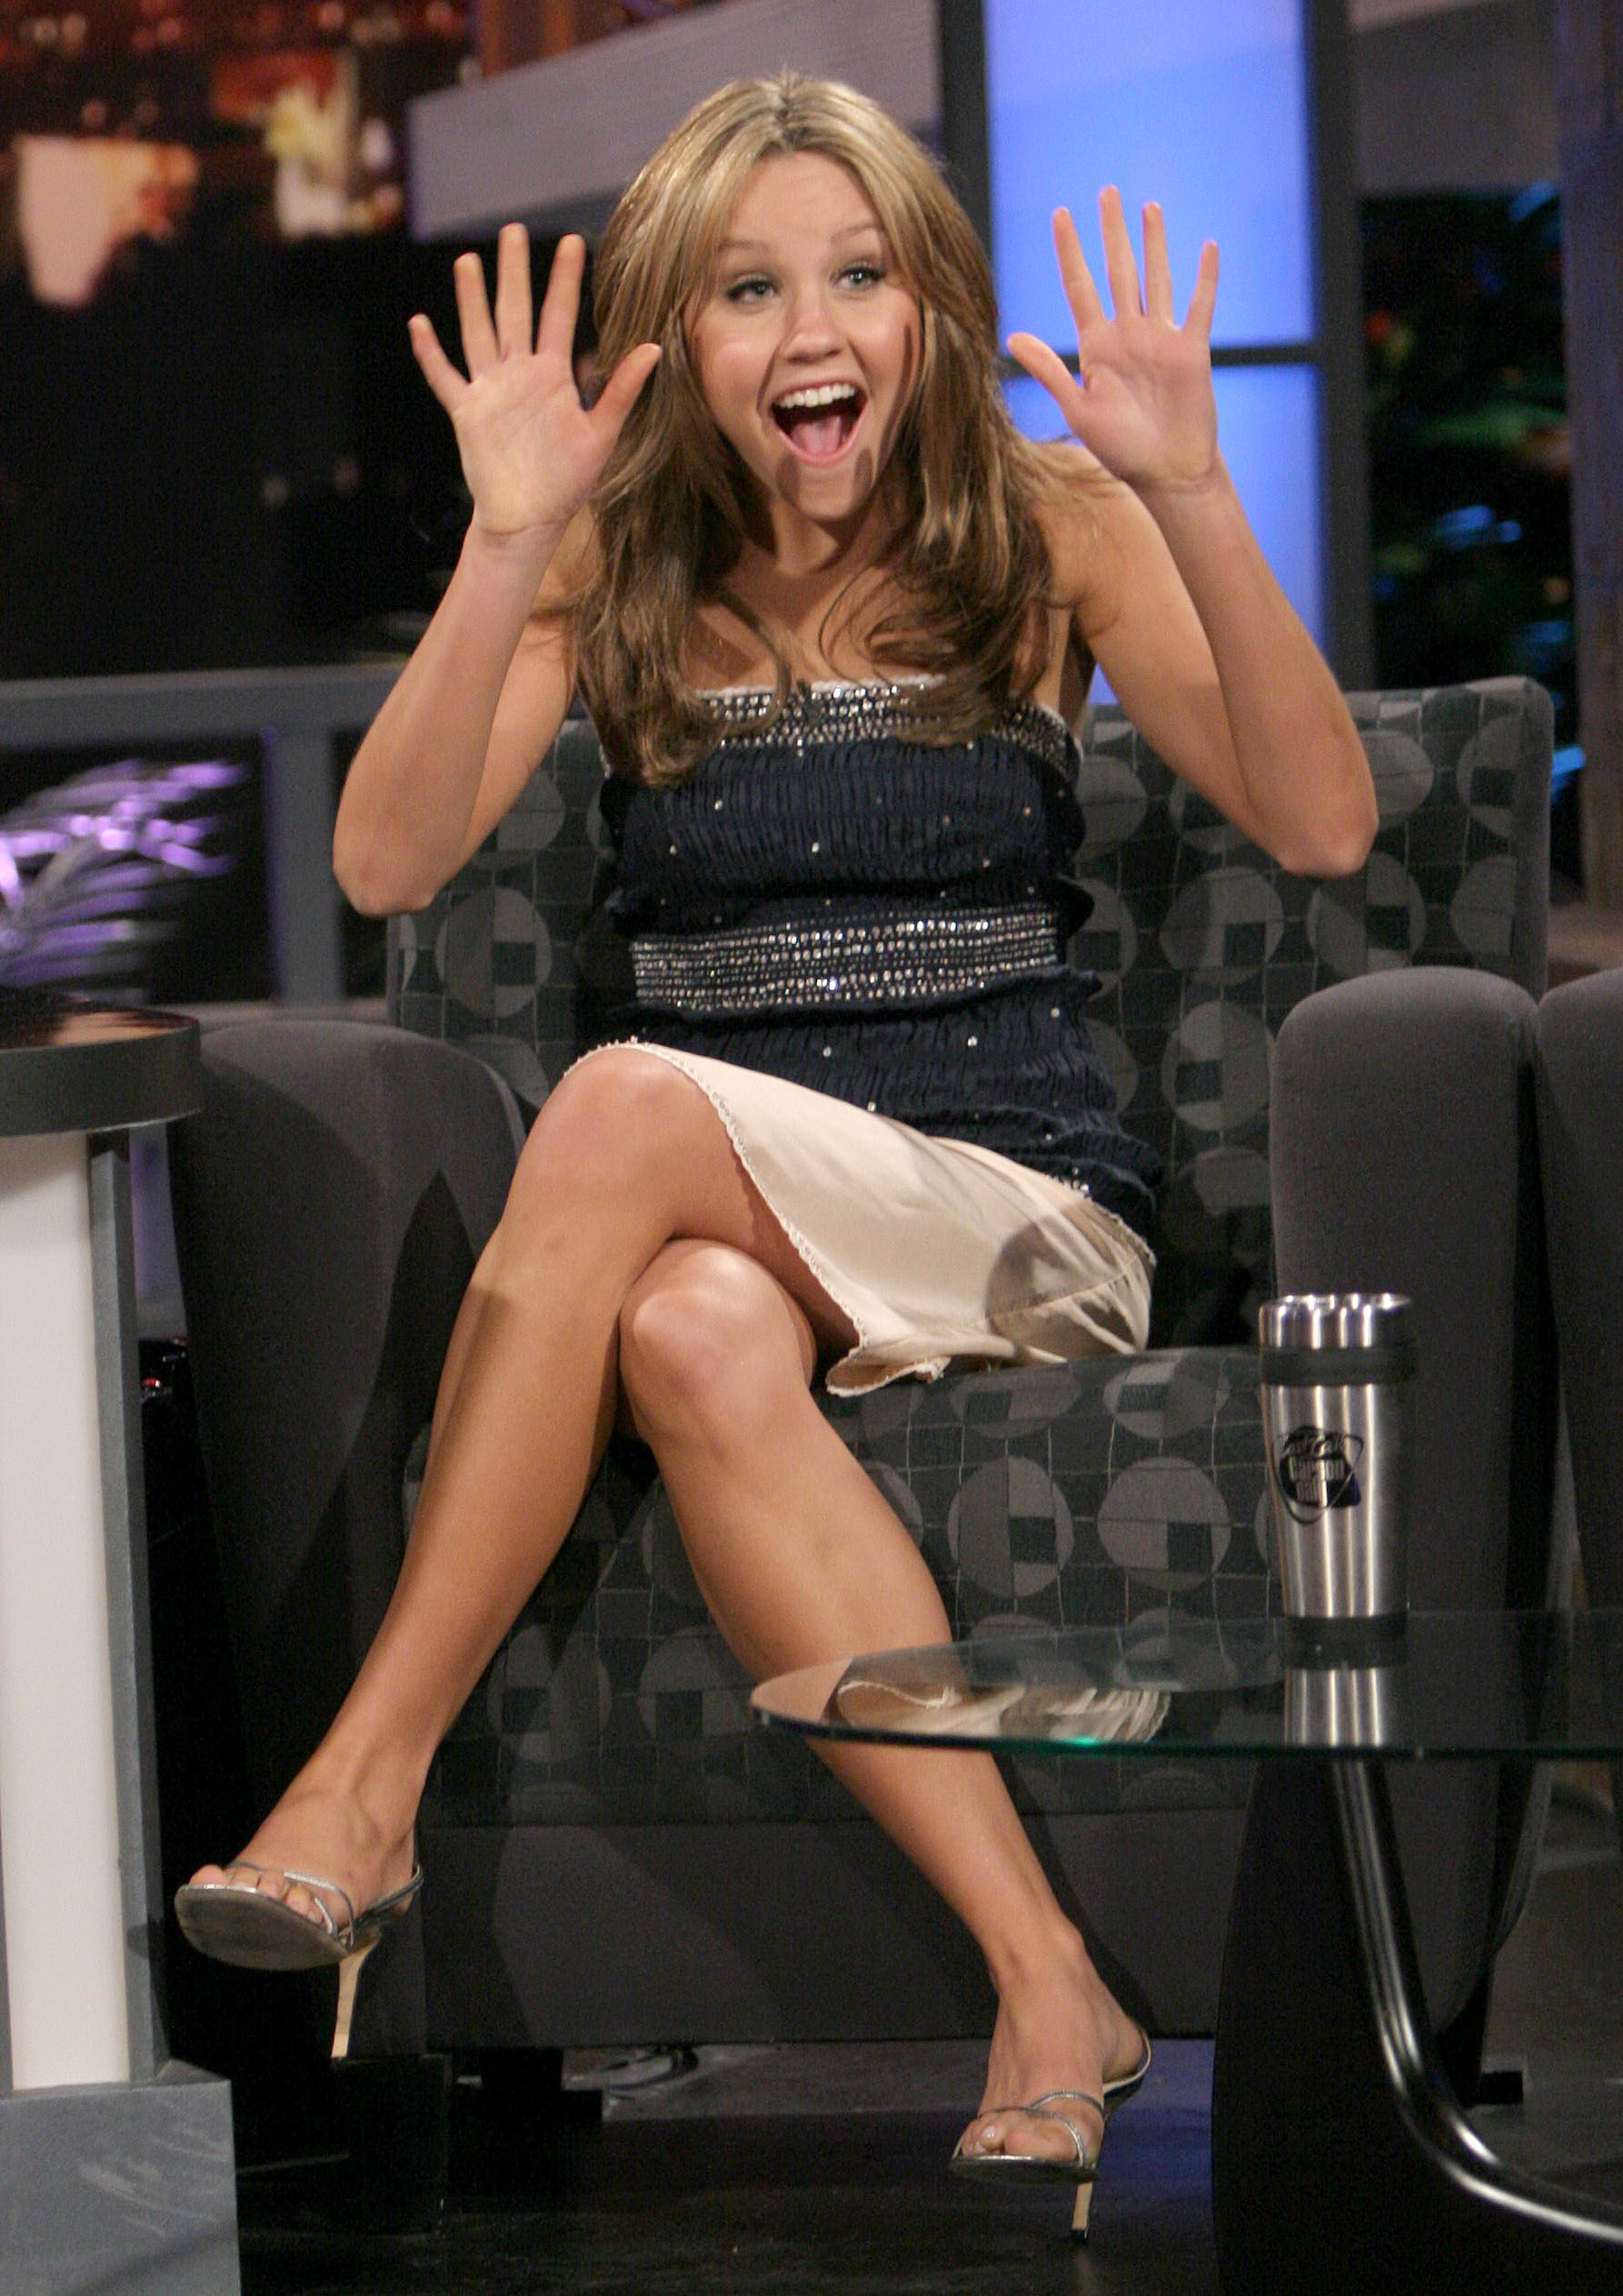 Amanda Bynes Nude - Page 5 Pictures, Naked, Oops, Topless -7521